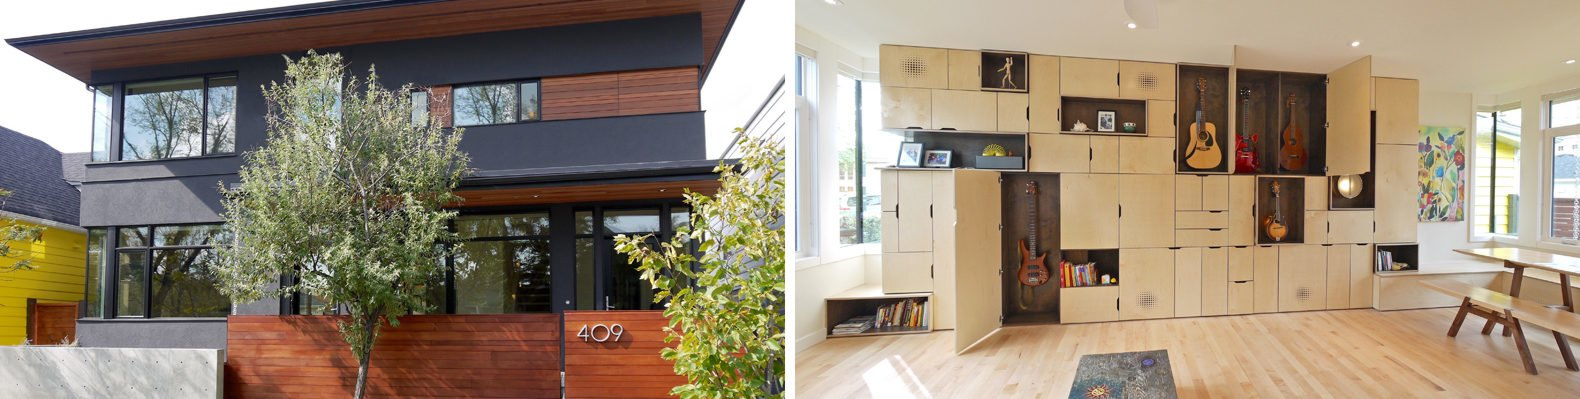 On the left, black and warm wood home exterior. On the right, storage wall holding guitars and art.